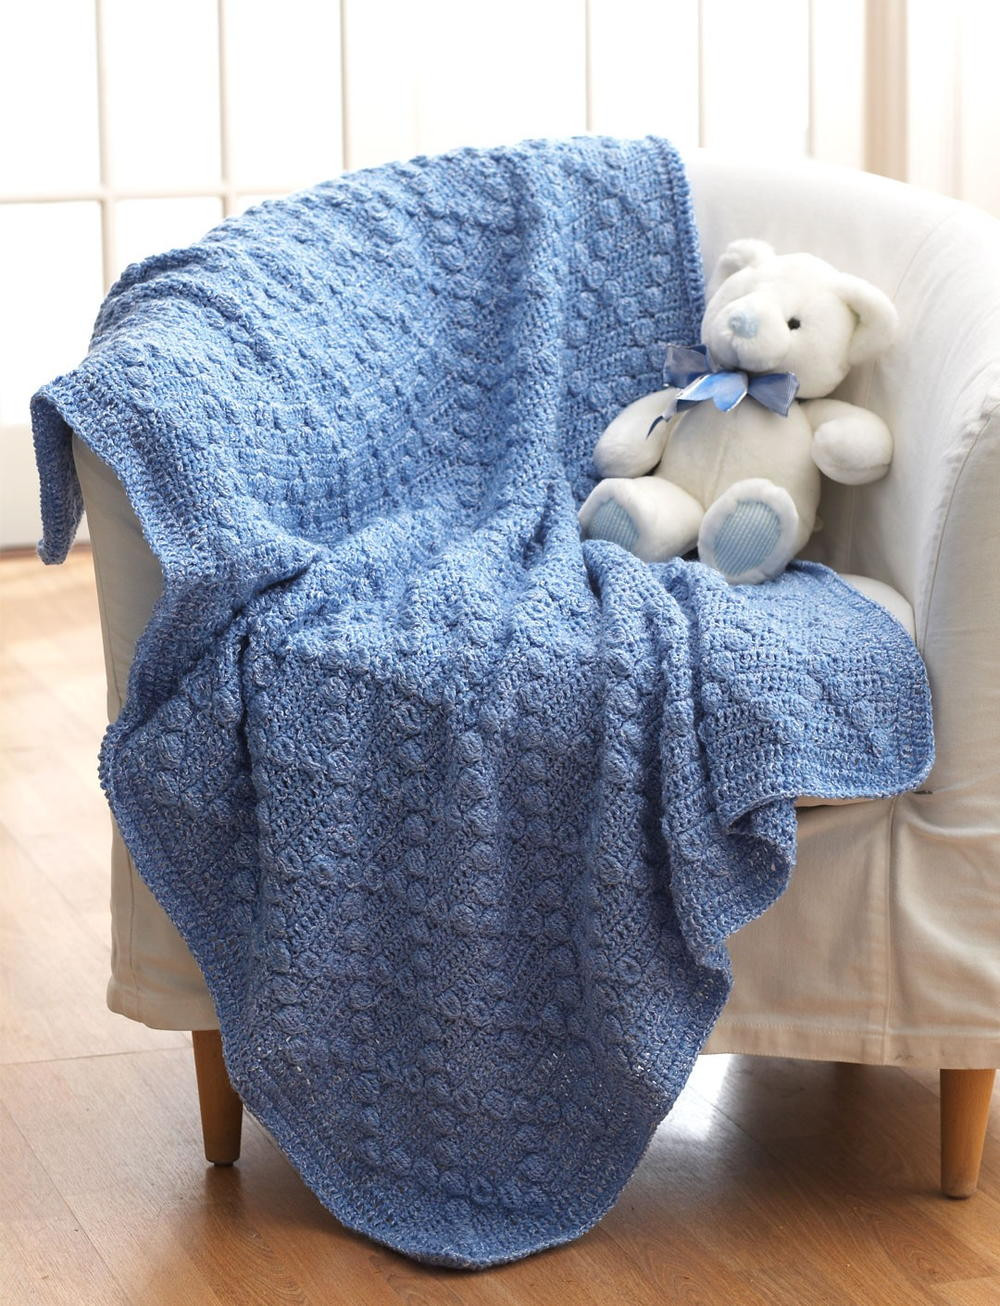 Baby Afghan Patterns Unique Bumpy Baby Blanket Of Amazing 46 Ideas Baby Afghan Patterns